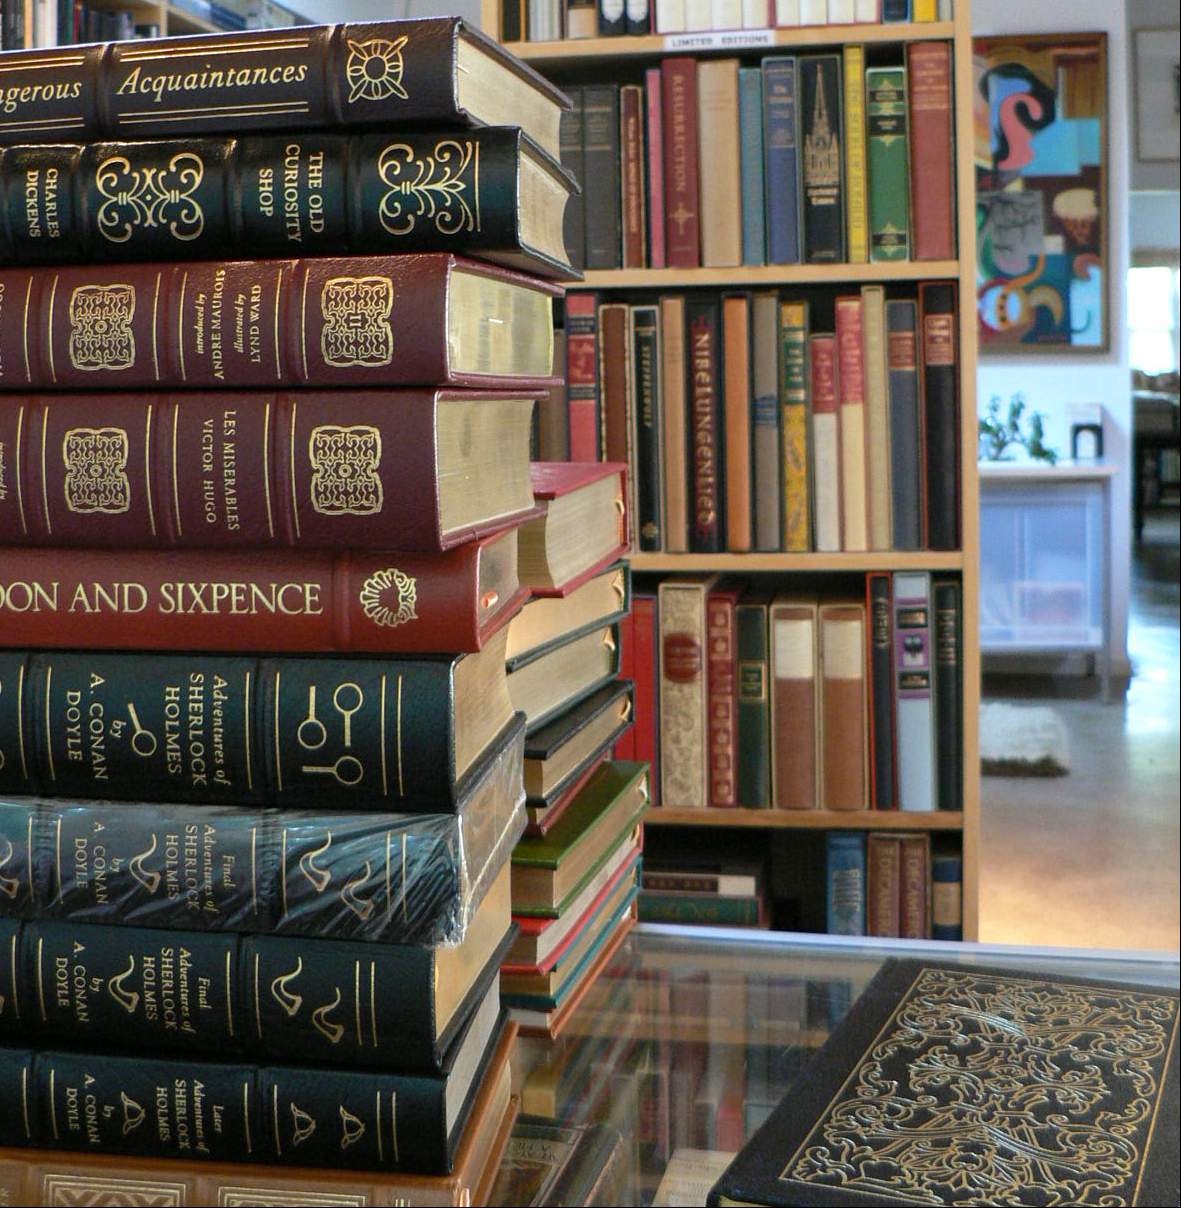 Since 1996 Black Cat Books Has Been Buying And Selling Fine Used Books In  Their Book Shop, Now Located In The Heart Of Shelter Island, Ny Stop By  And